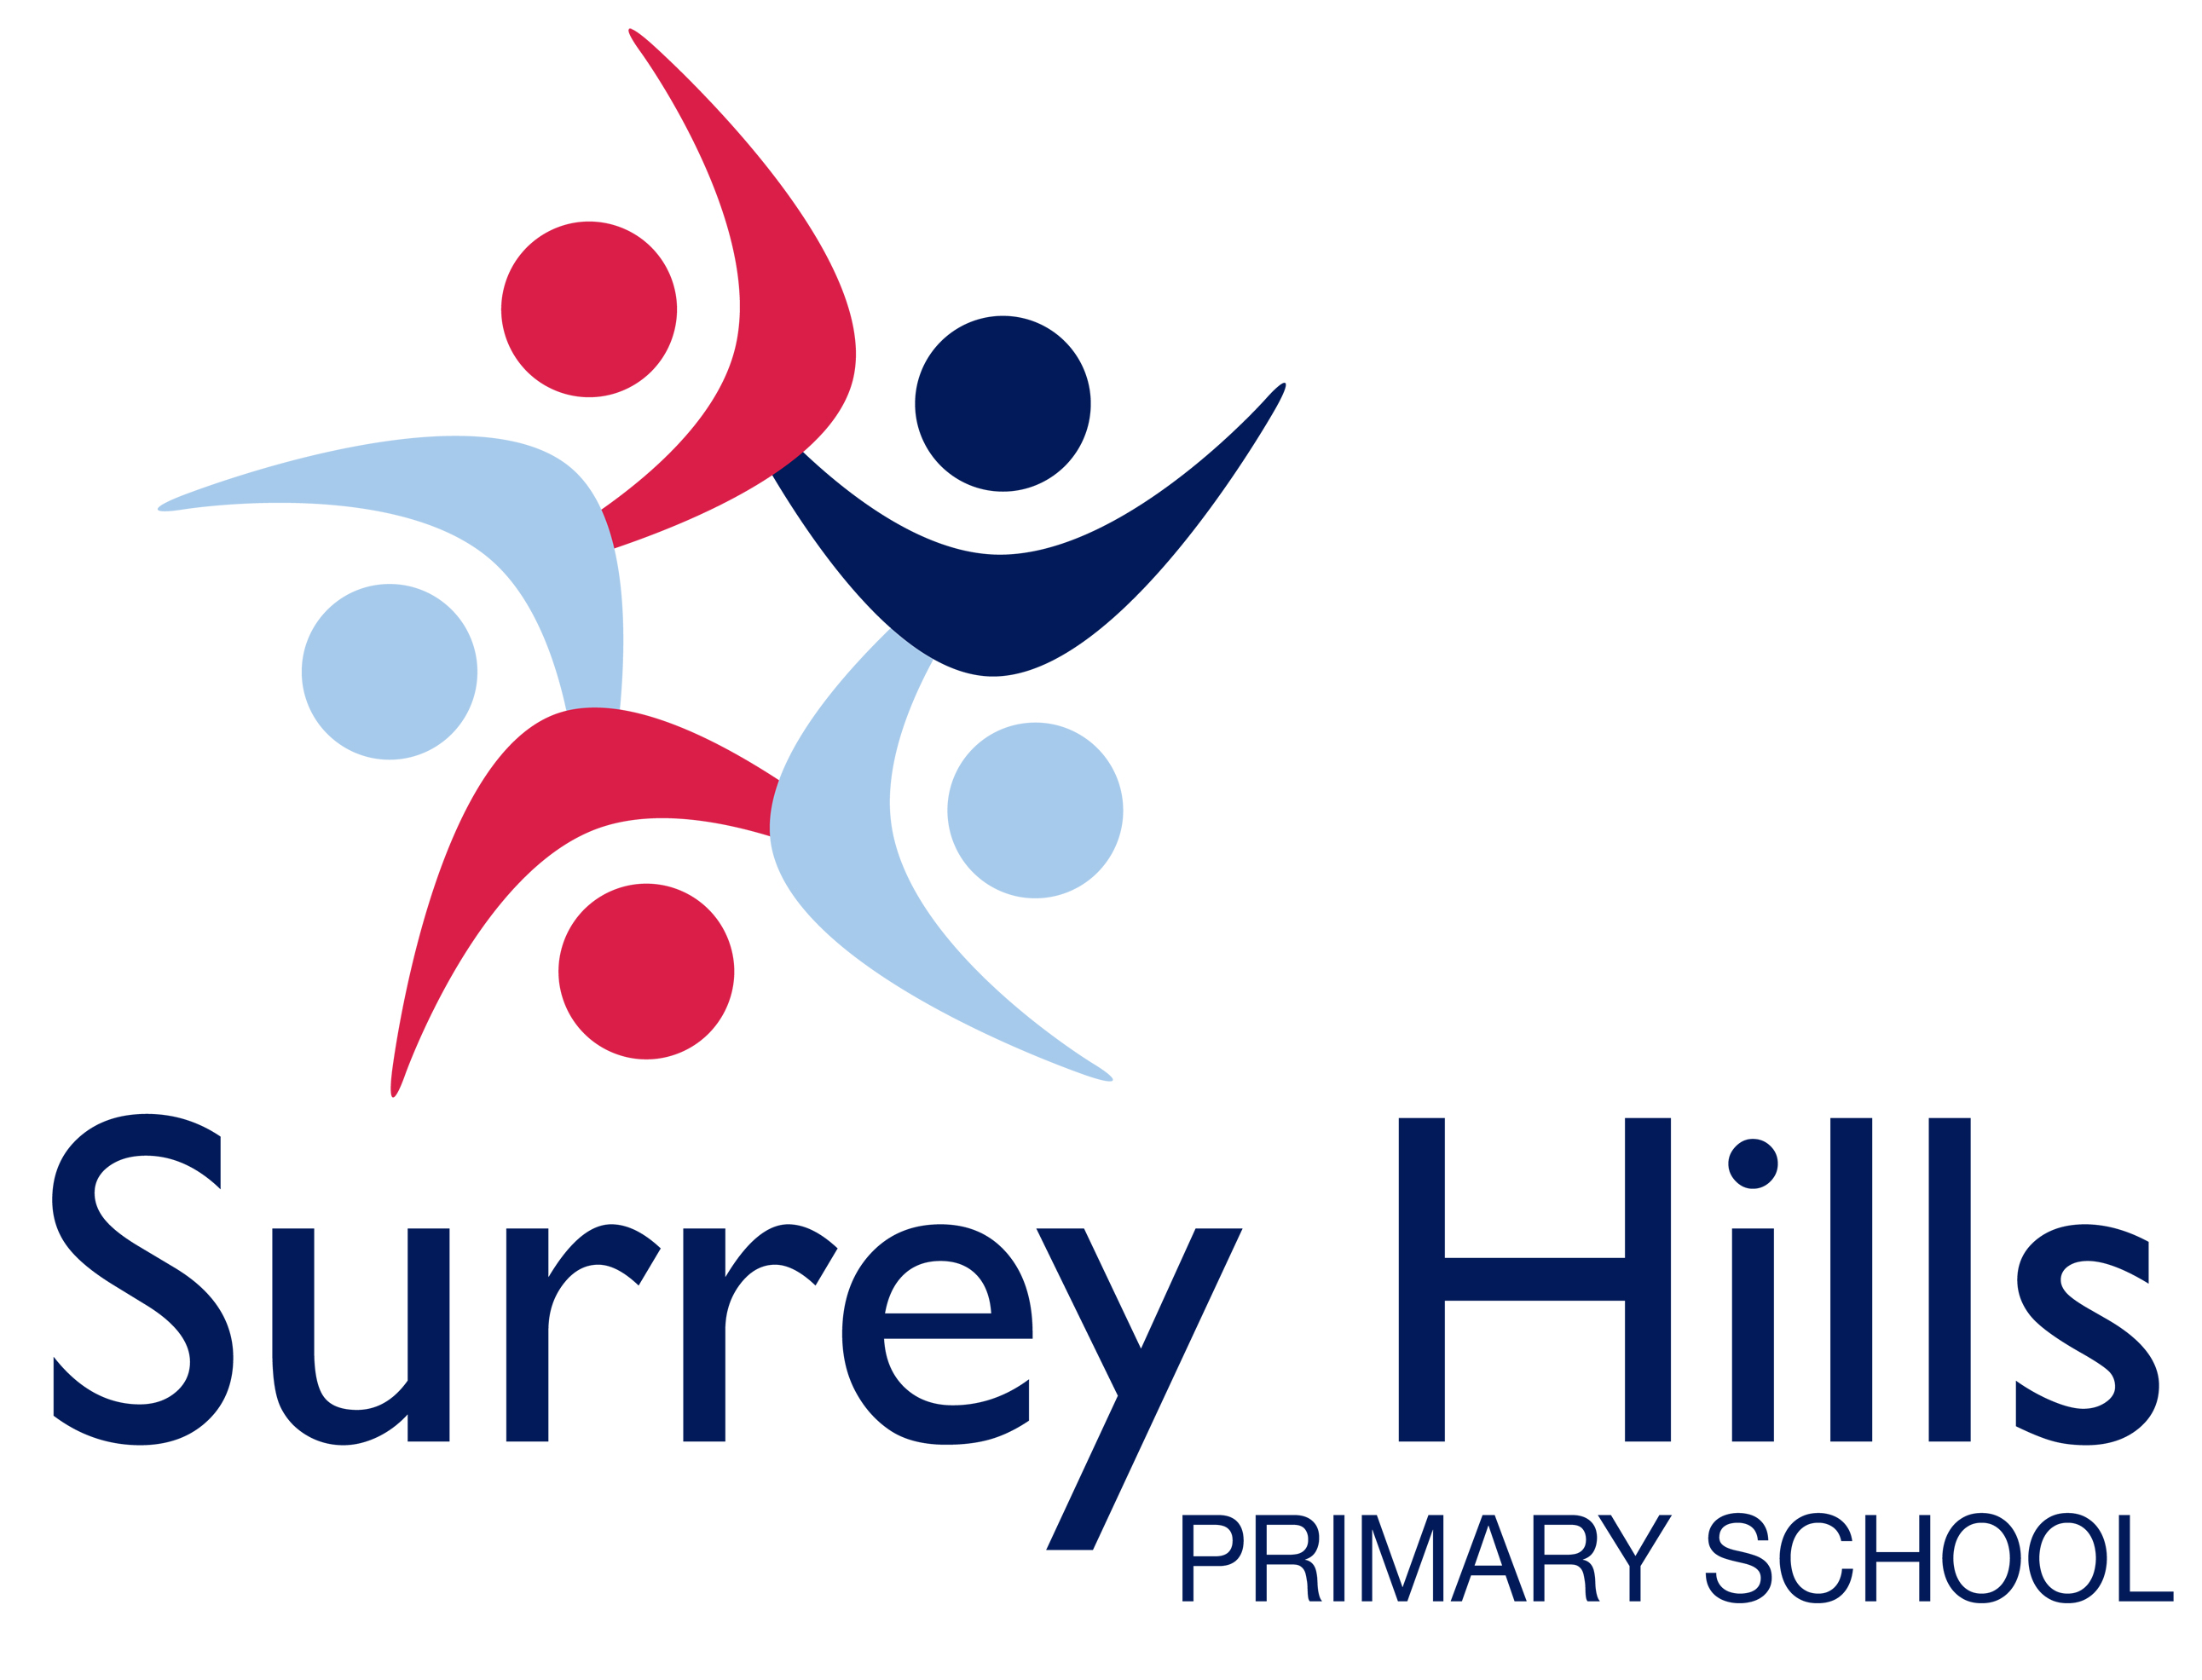 Surrey Hills Primary School